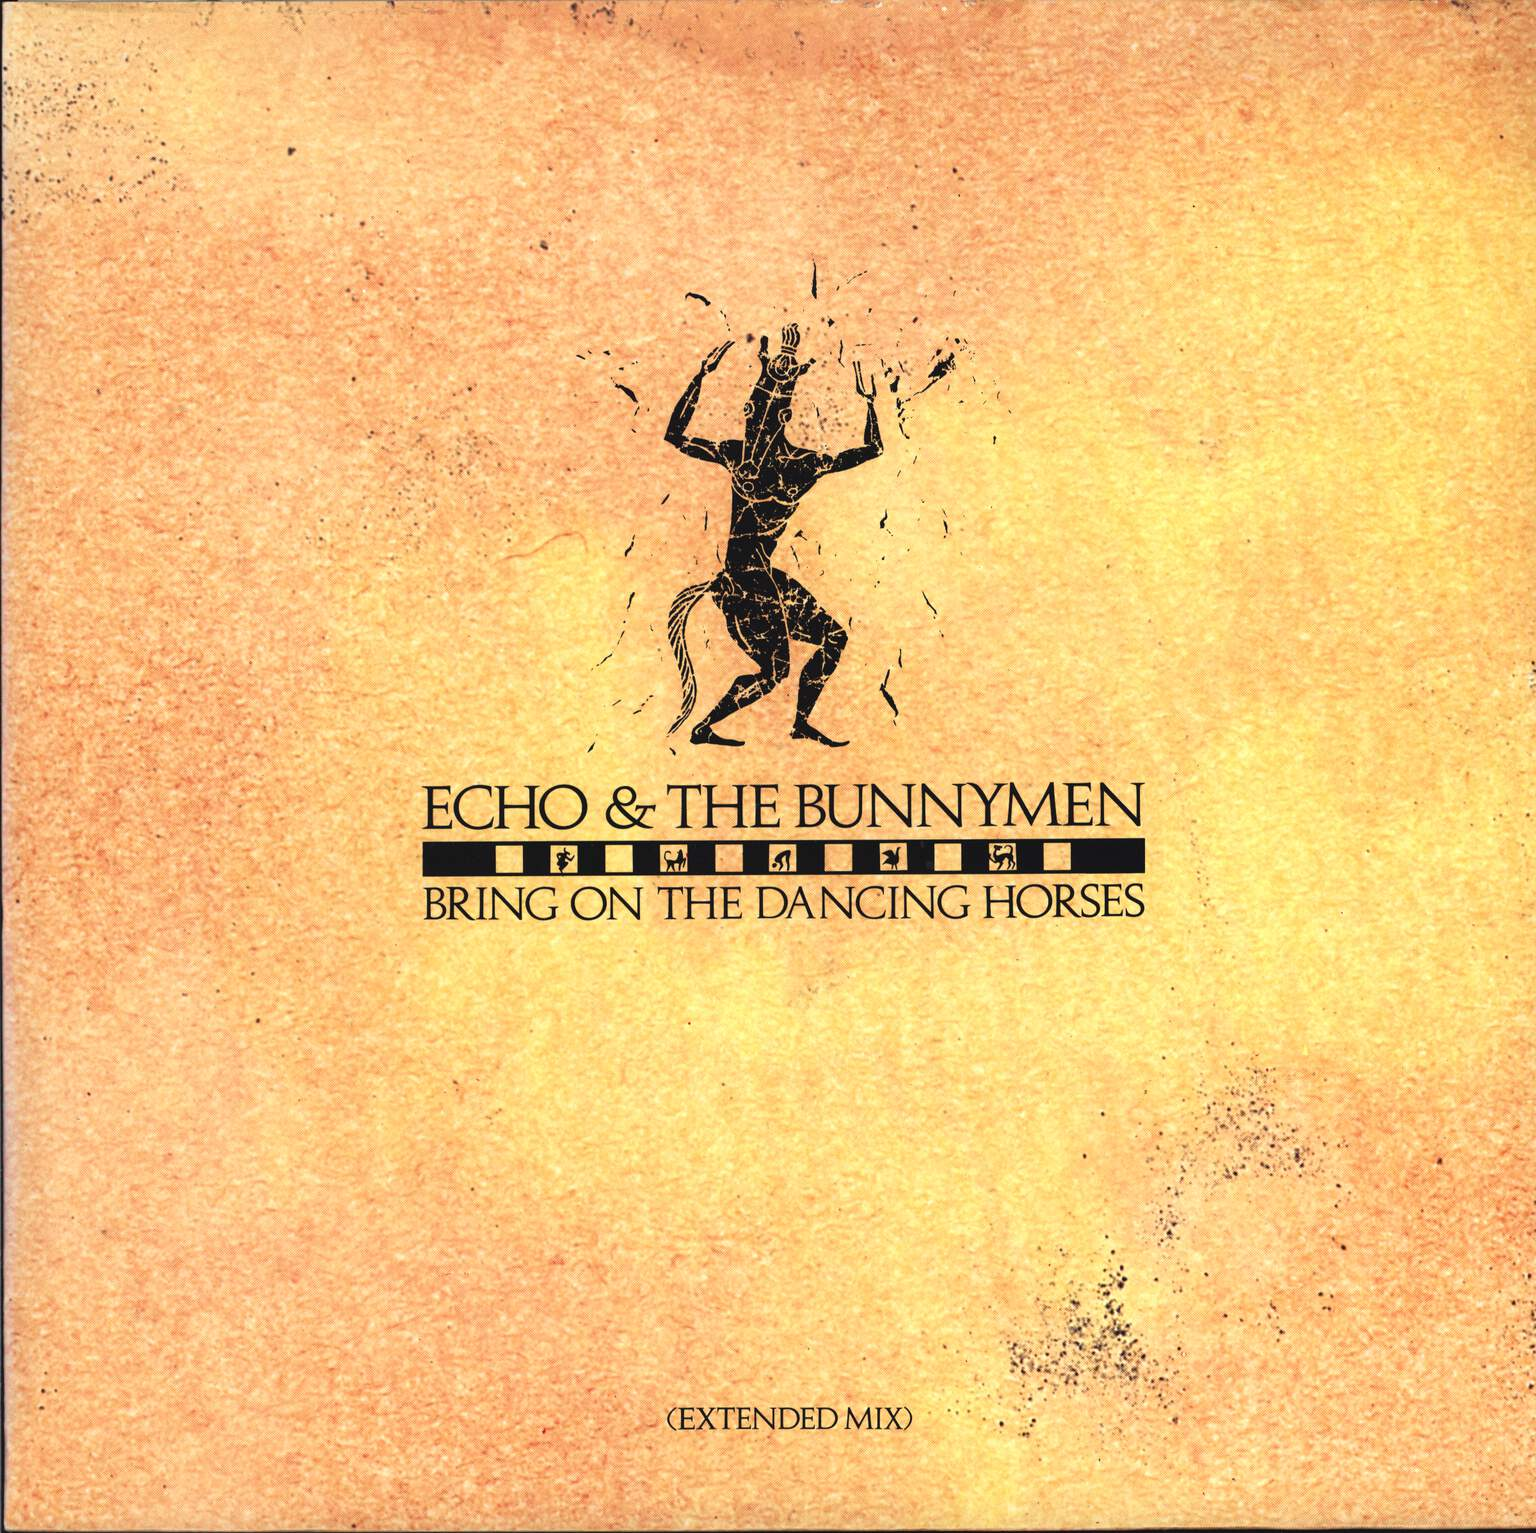 "Echo & the Bunnymen: Bring On The Dancing Horses, 12"" Maxi Single (Vinyl)"